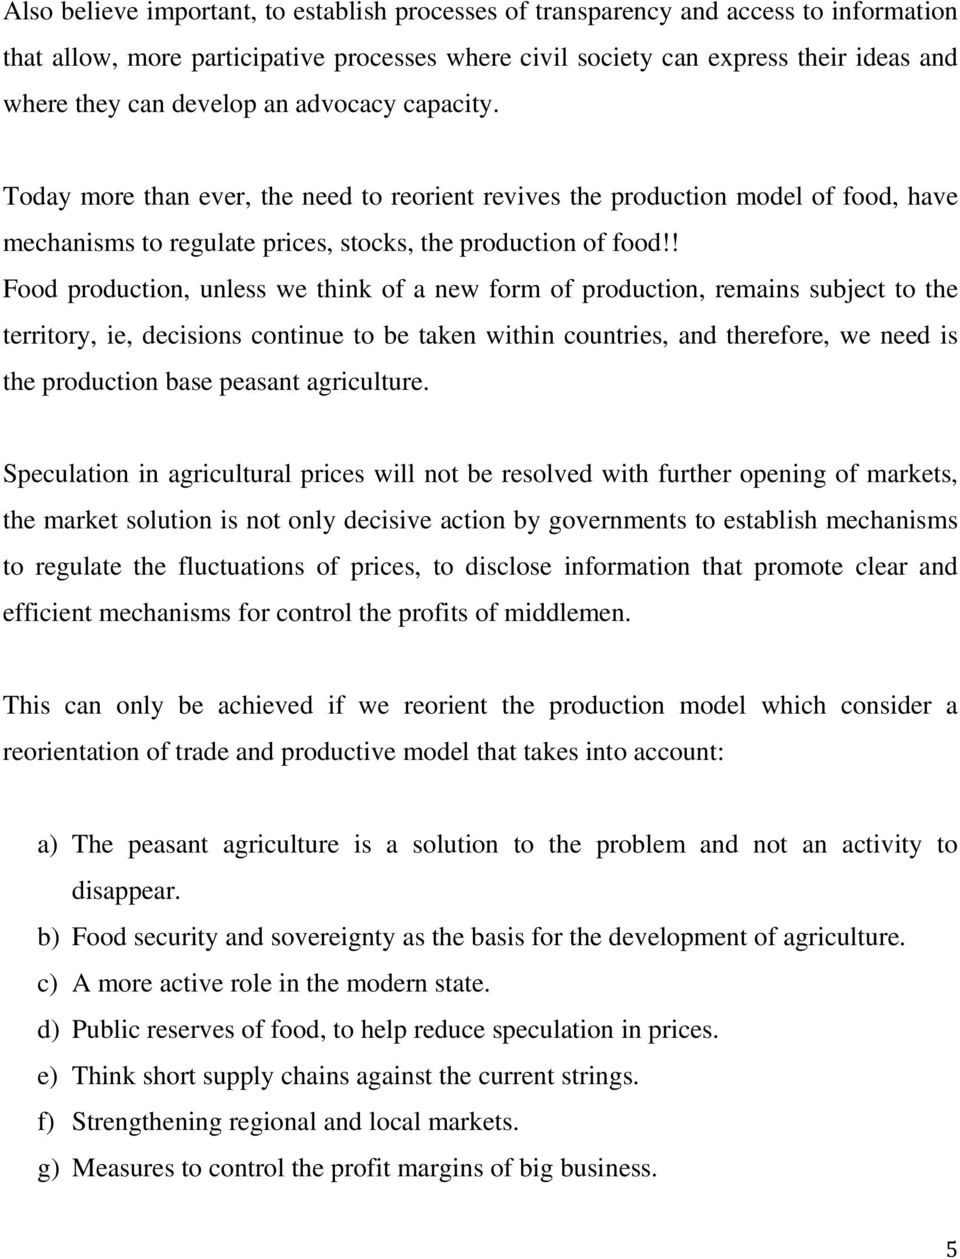 ! Food production, unless we think of a new form of production, remains subject to the territory, ie, decisions continue to be taken within countries, and therefore, we need is the production base